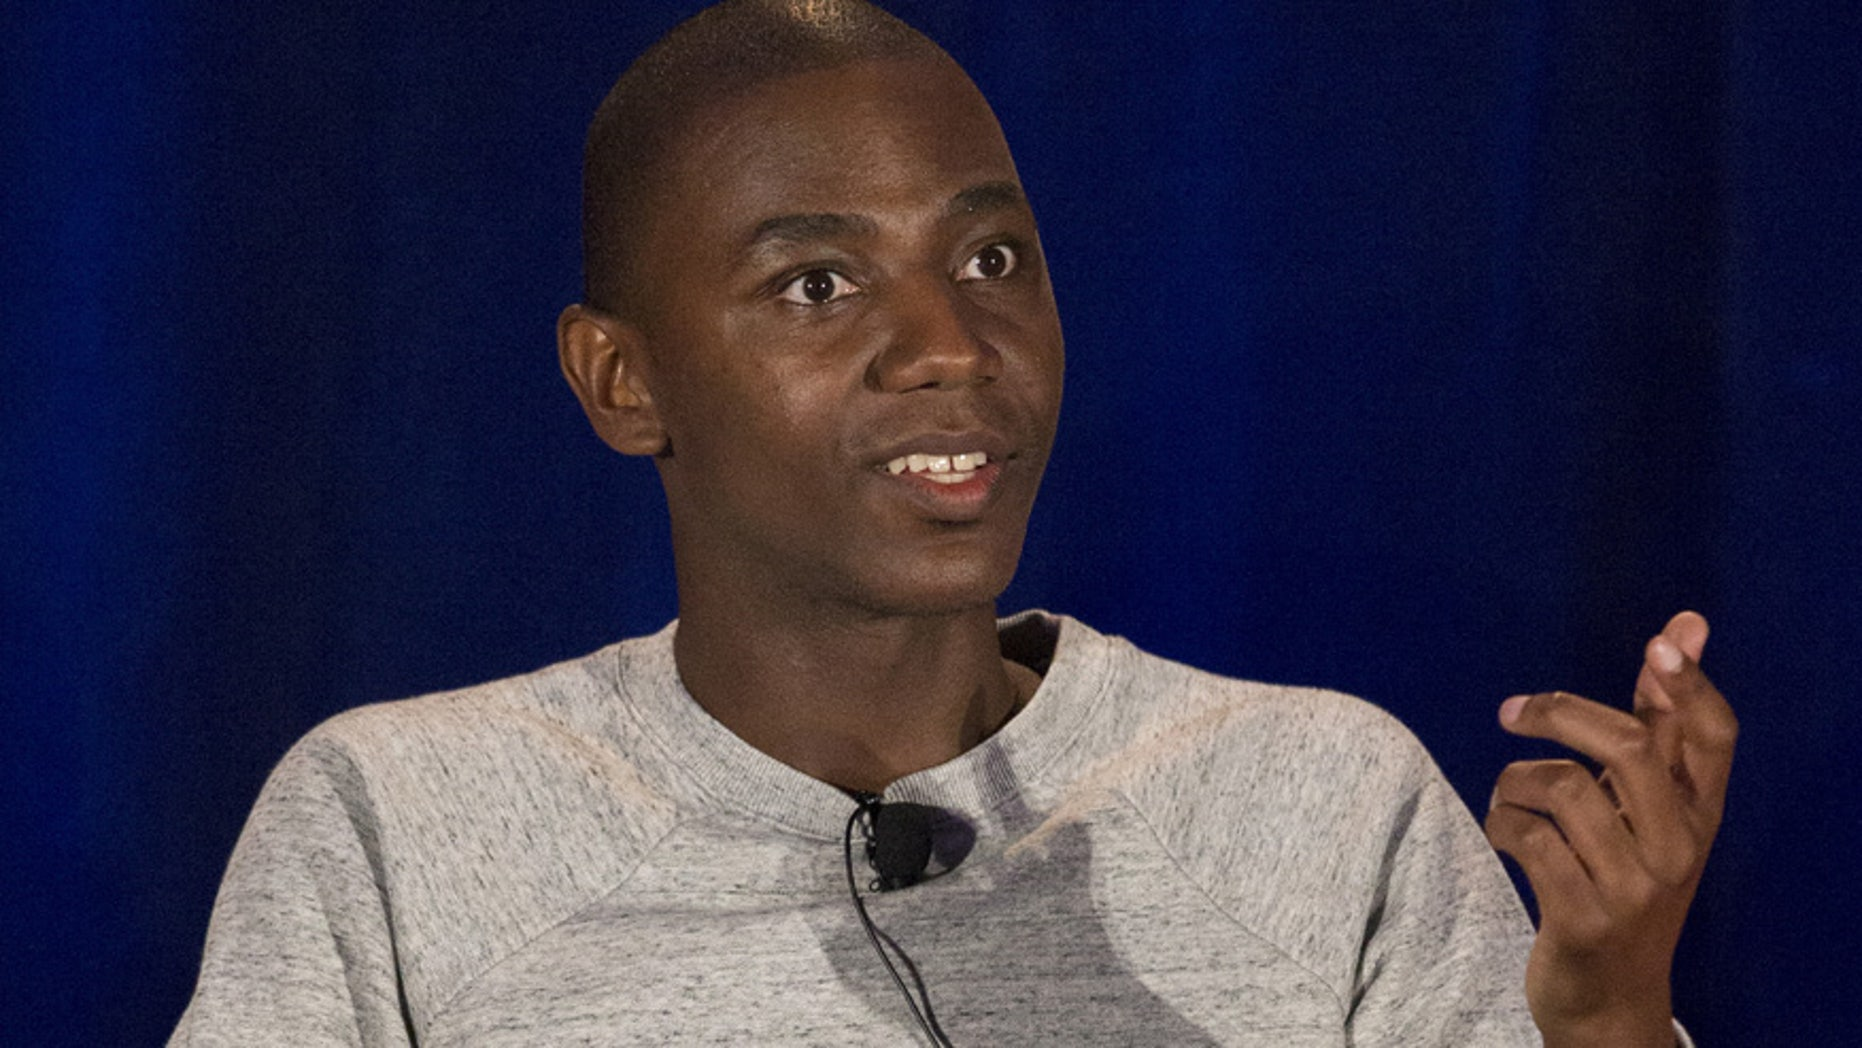 'Carmichael Show' star Jerrod Carmichael speaks at a press panel. NBC says the show will air the N-word uncensored.